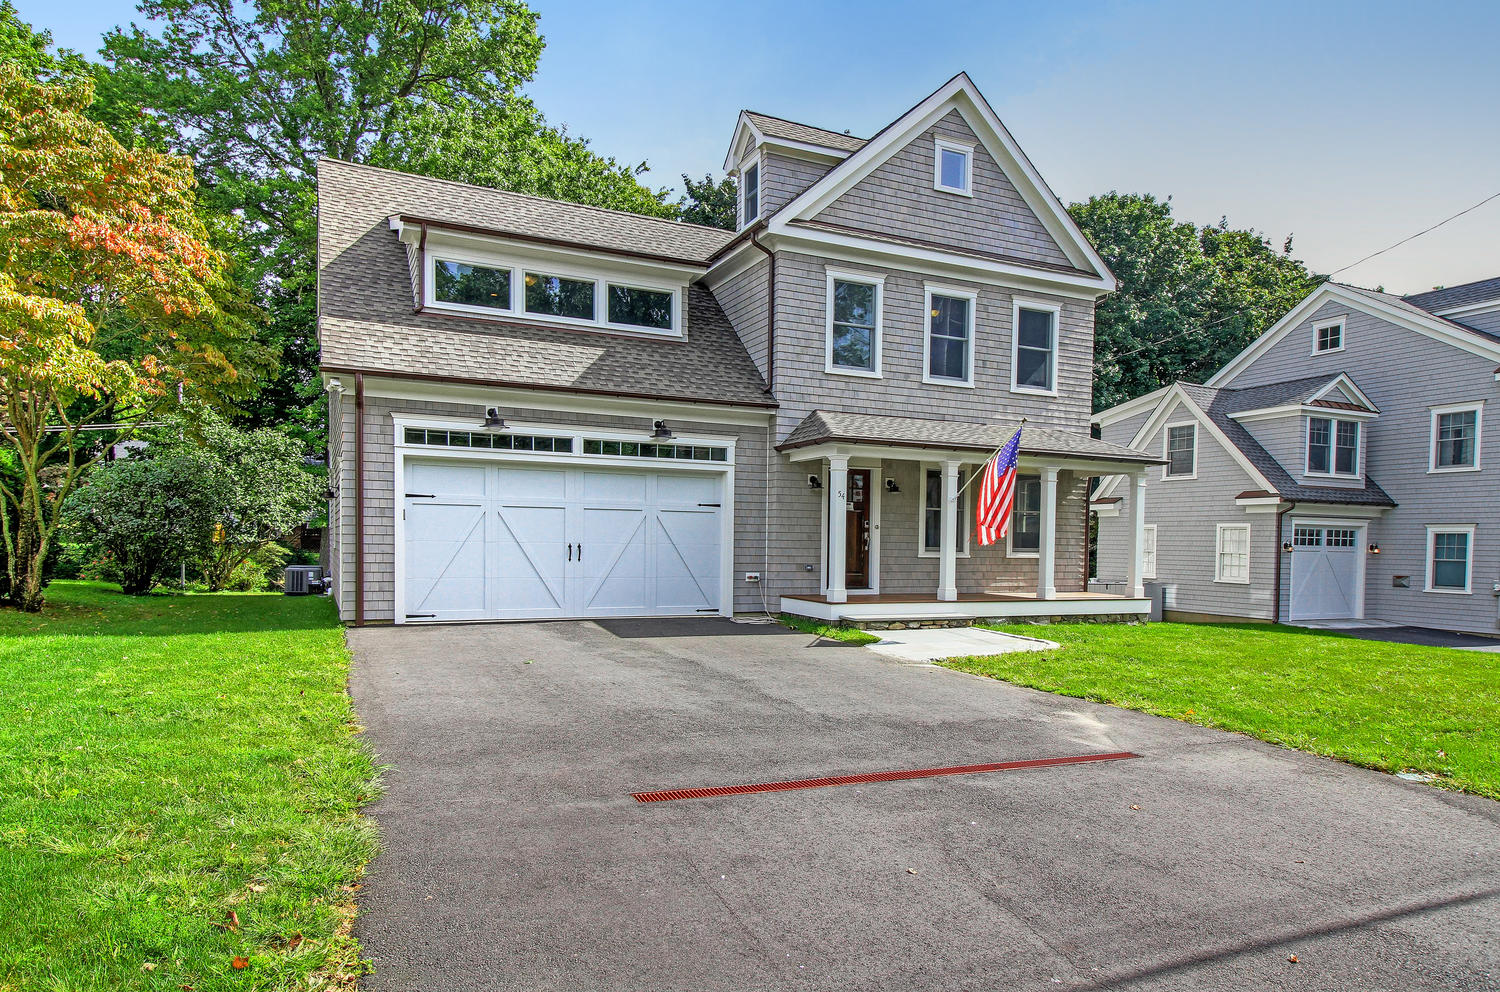 Single Family Home for Sale at Brand New Construction in Desired University Area 54 Figlar Avenue Fairfield, Connecticut, 06824 United States